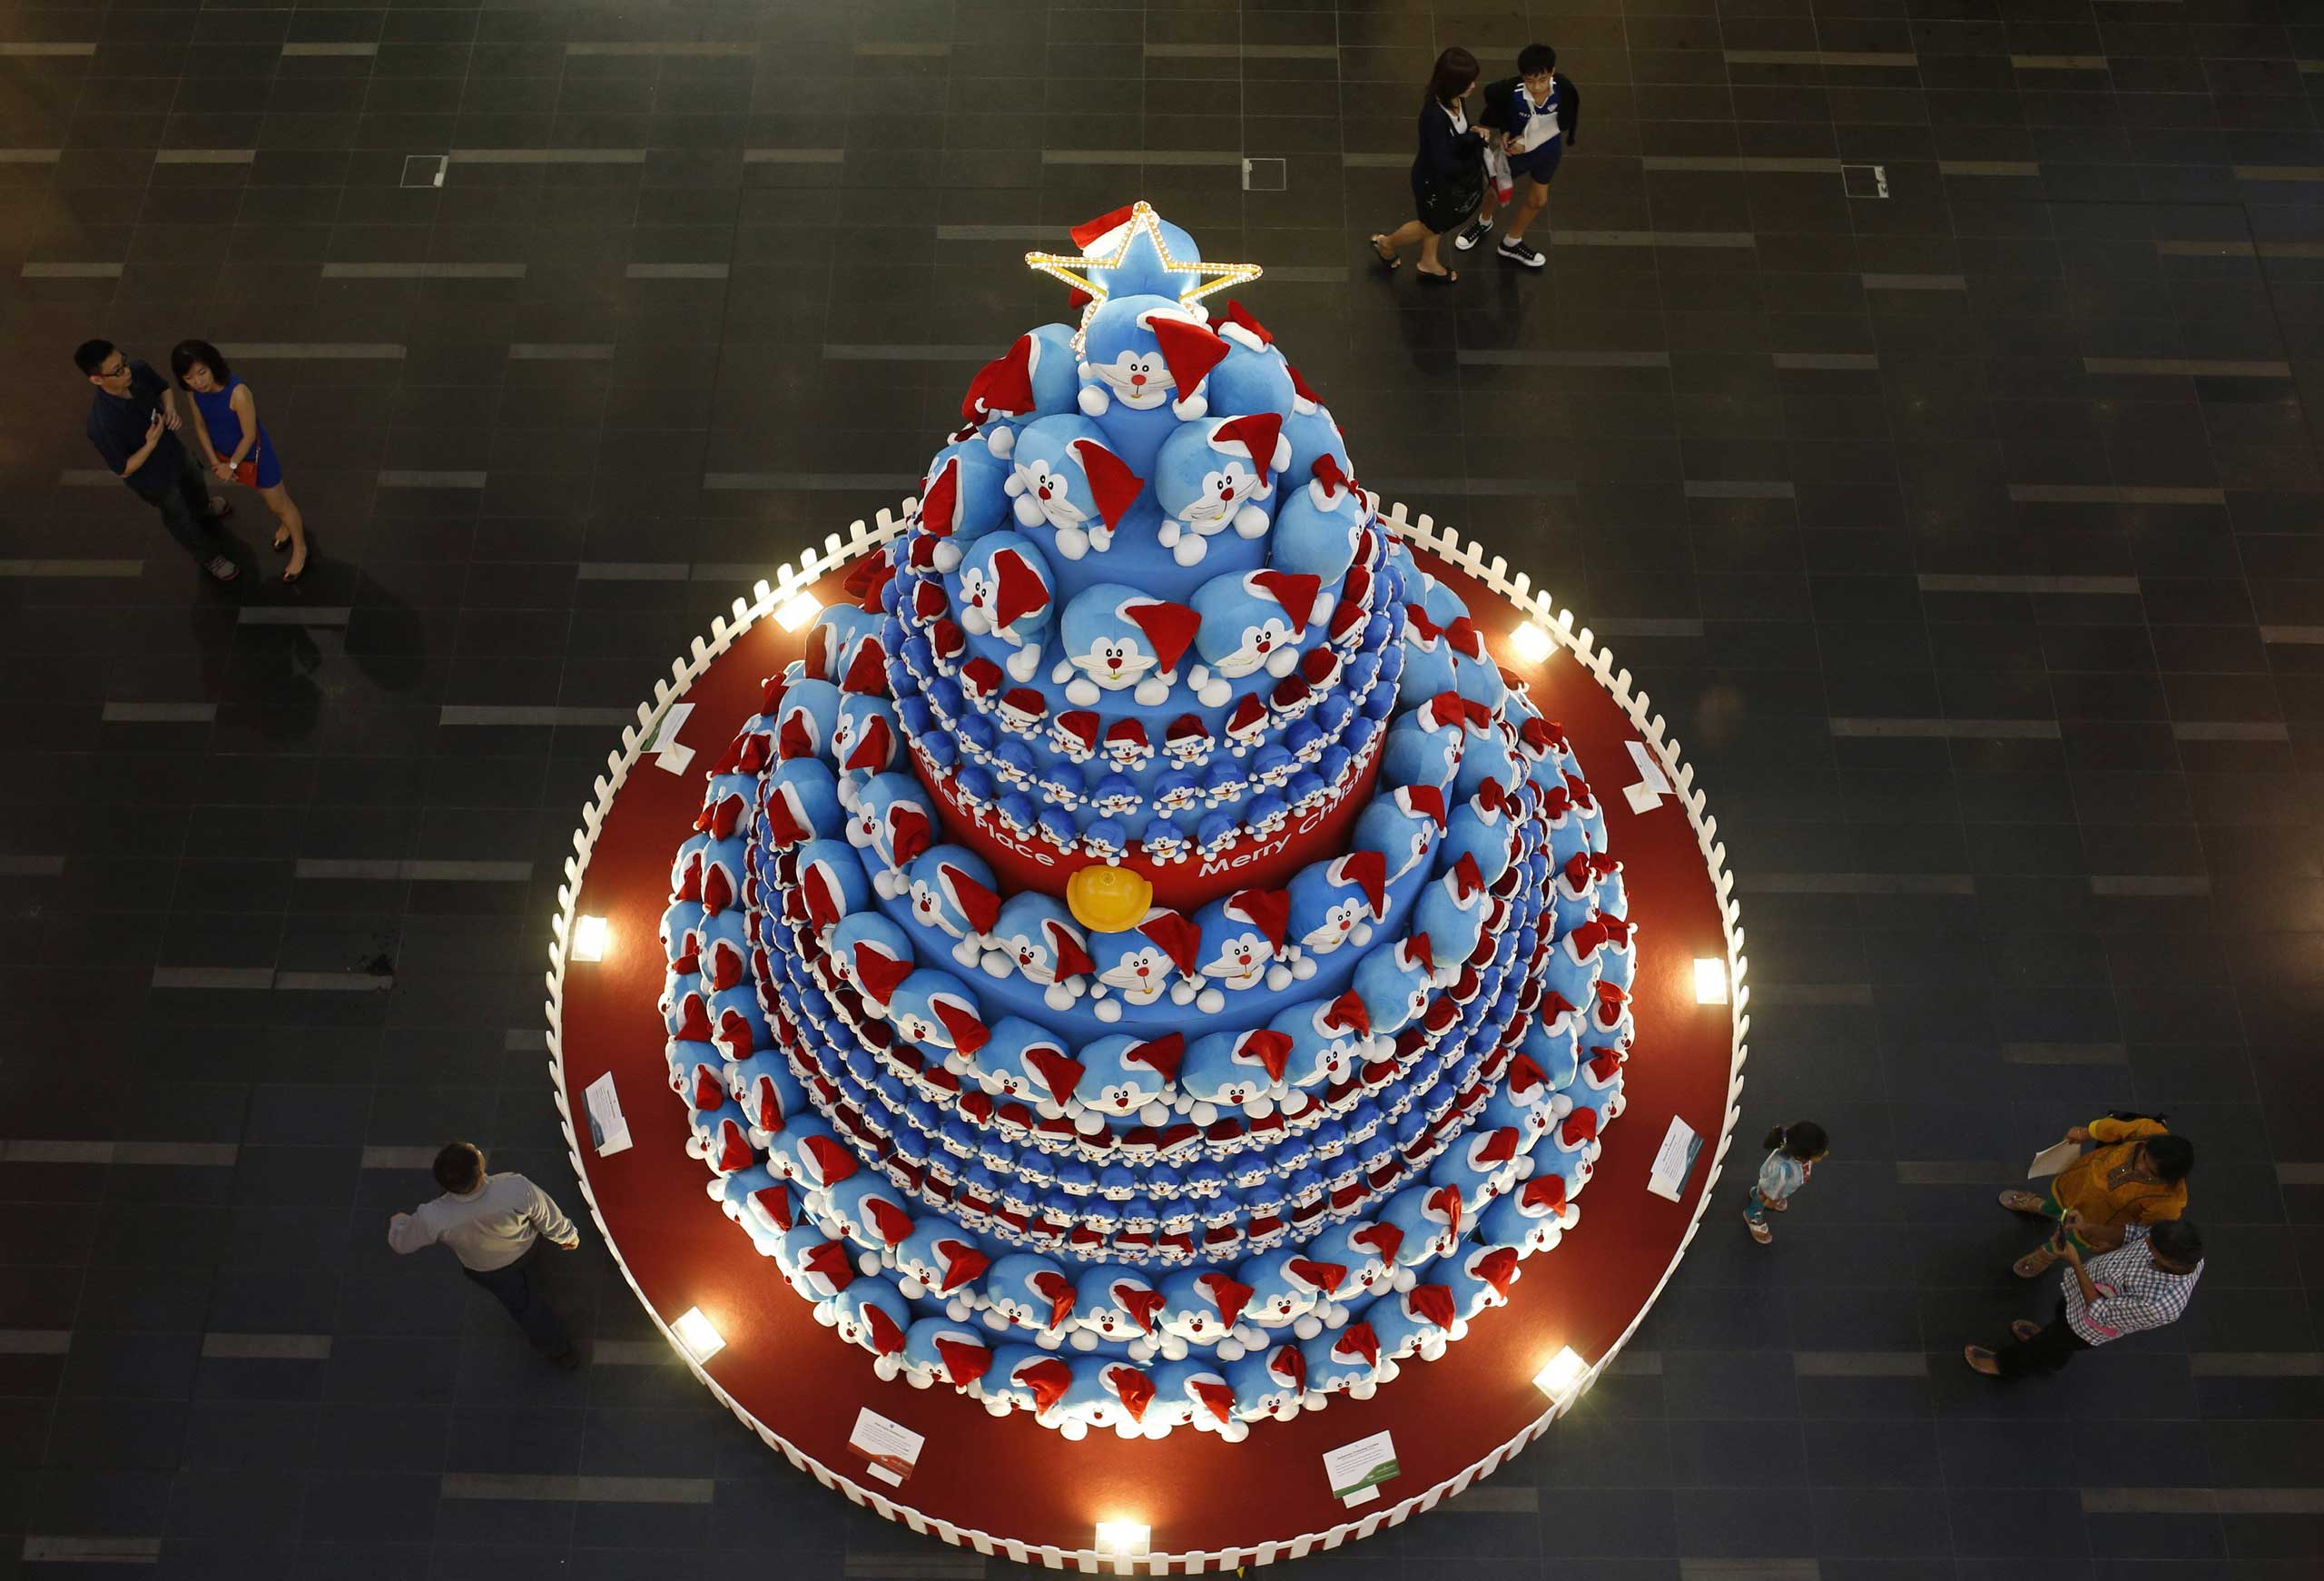 Nov. 24, 2014. People take photos of a Christmas tree made up of Japanese Manga character Doraemon at a shopping mall in the central business district in Singapore.